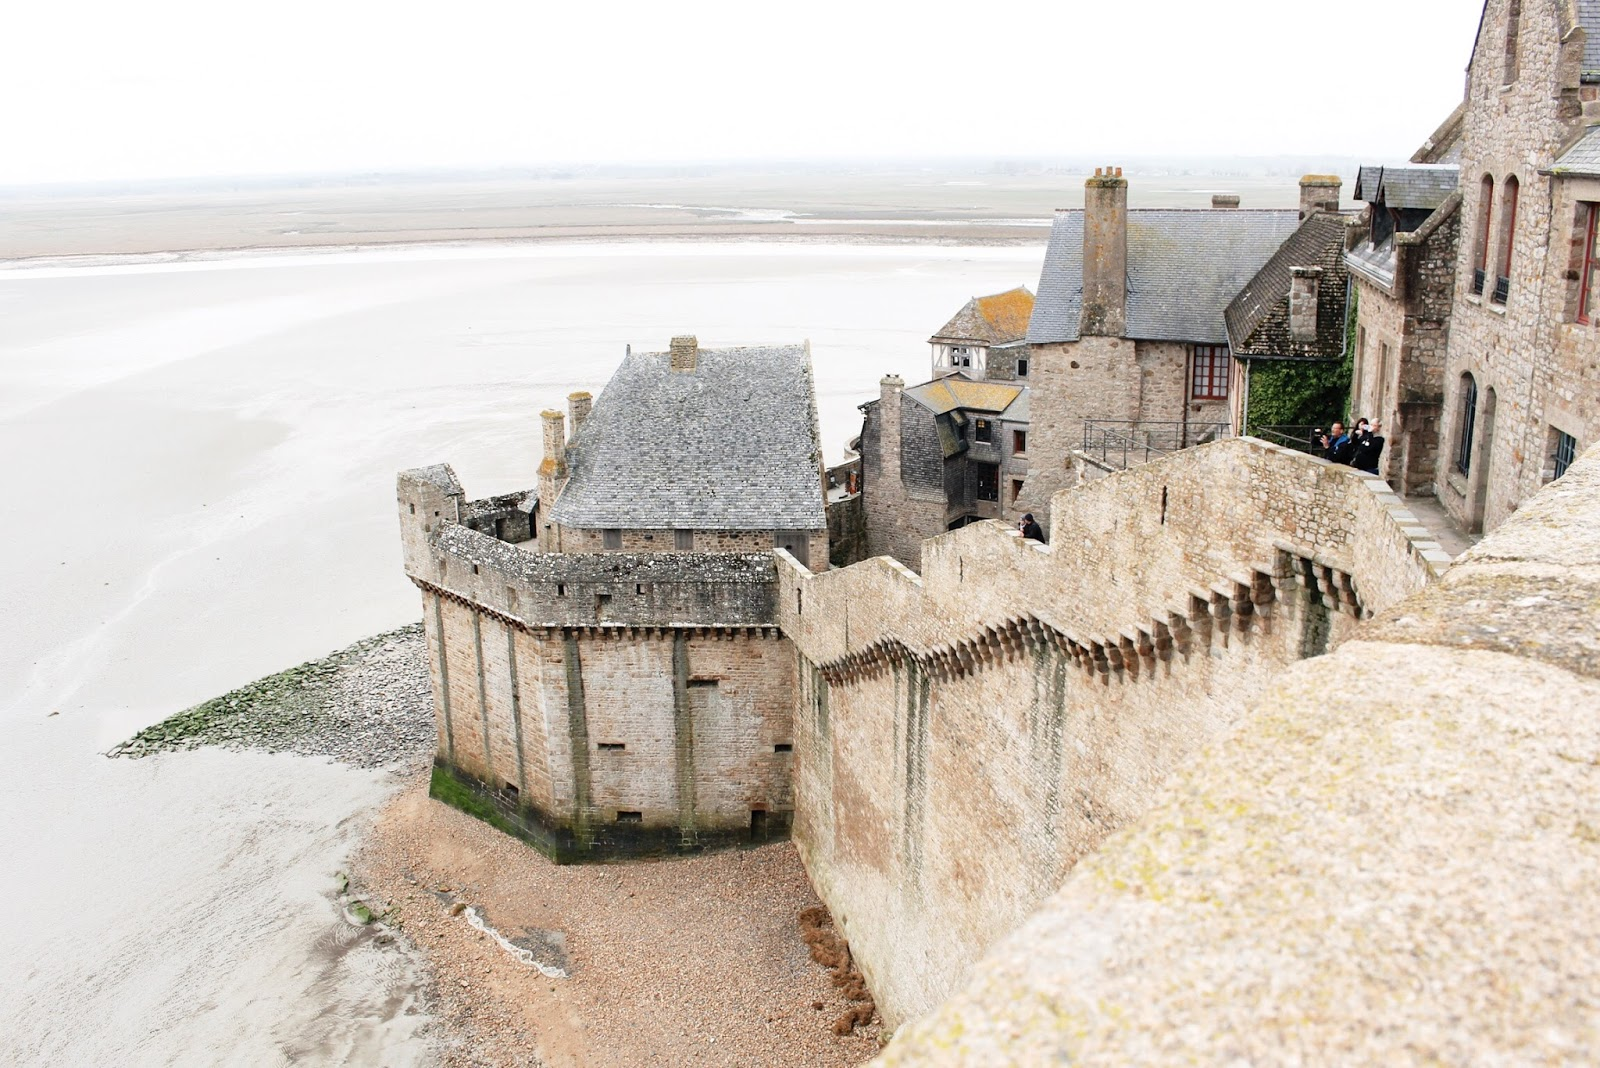 Architecture buildings and views Mont Saint Michel